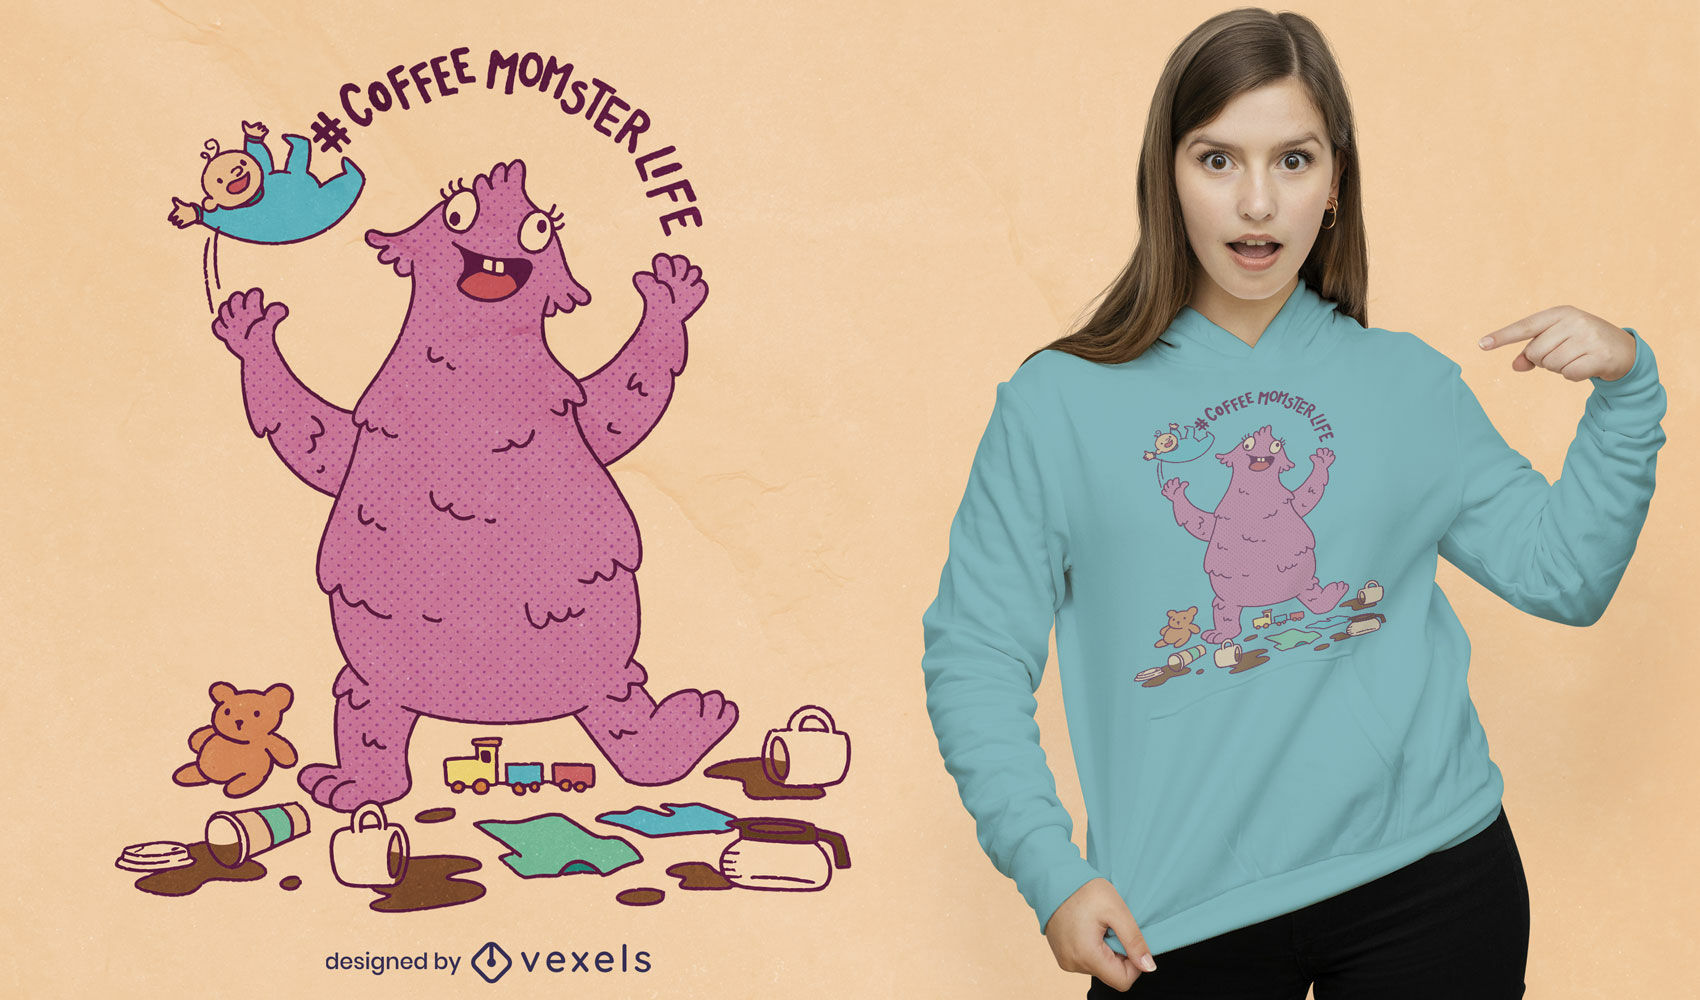 Cute coffee momster t-shirt design